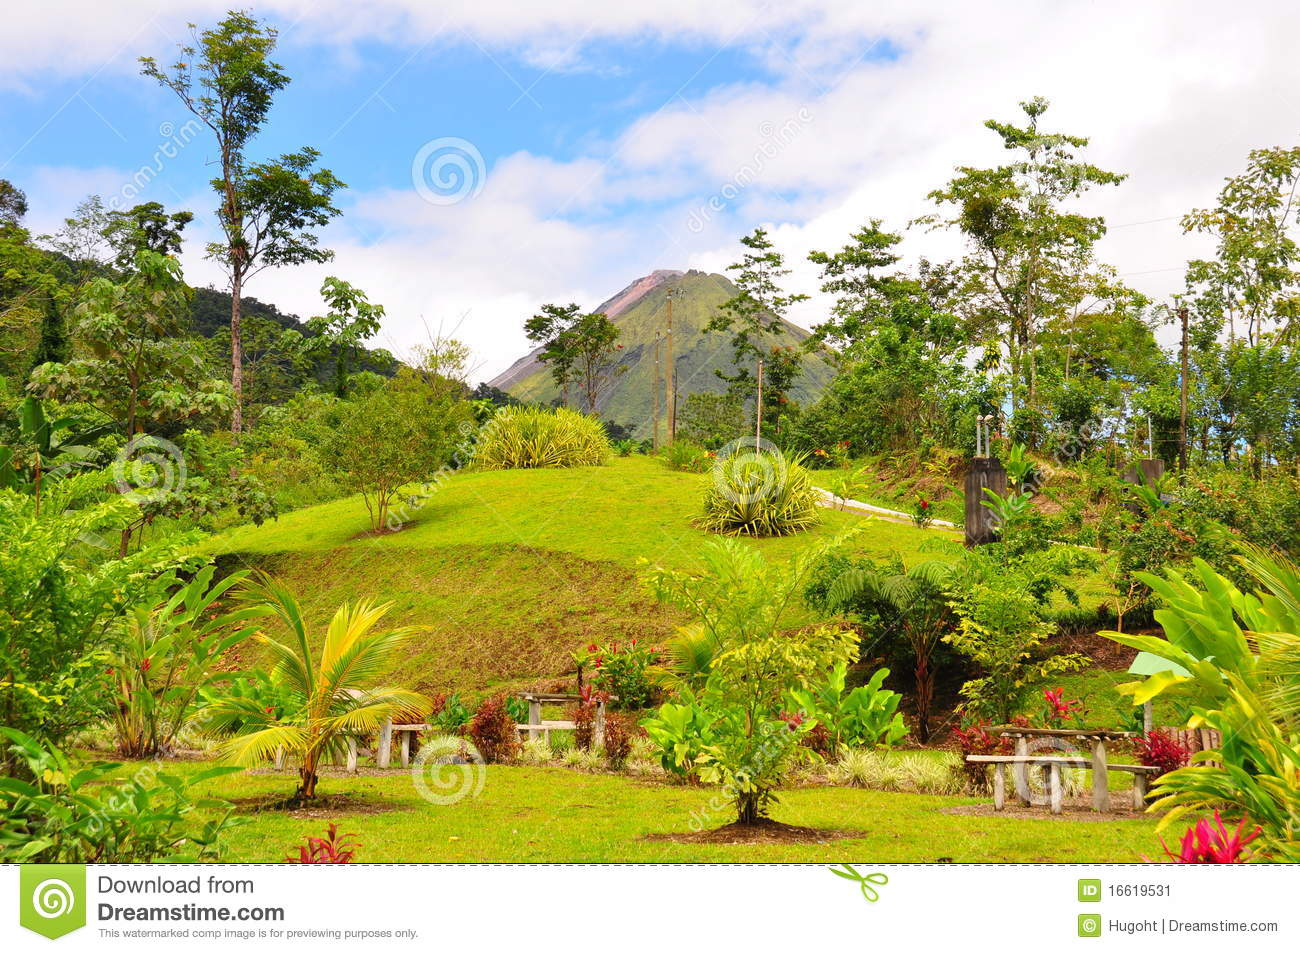 Download Arenal Volcano, Costa Rica stock image. Image of camping - 16619531